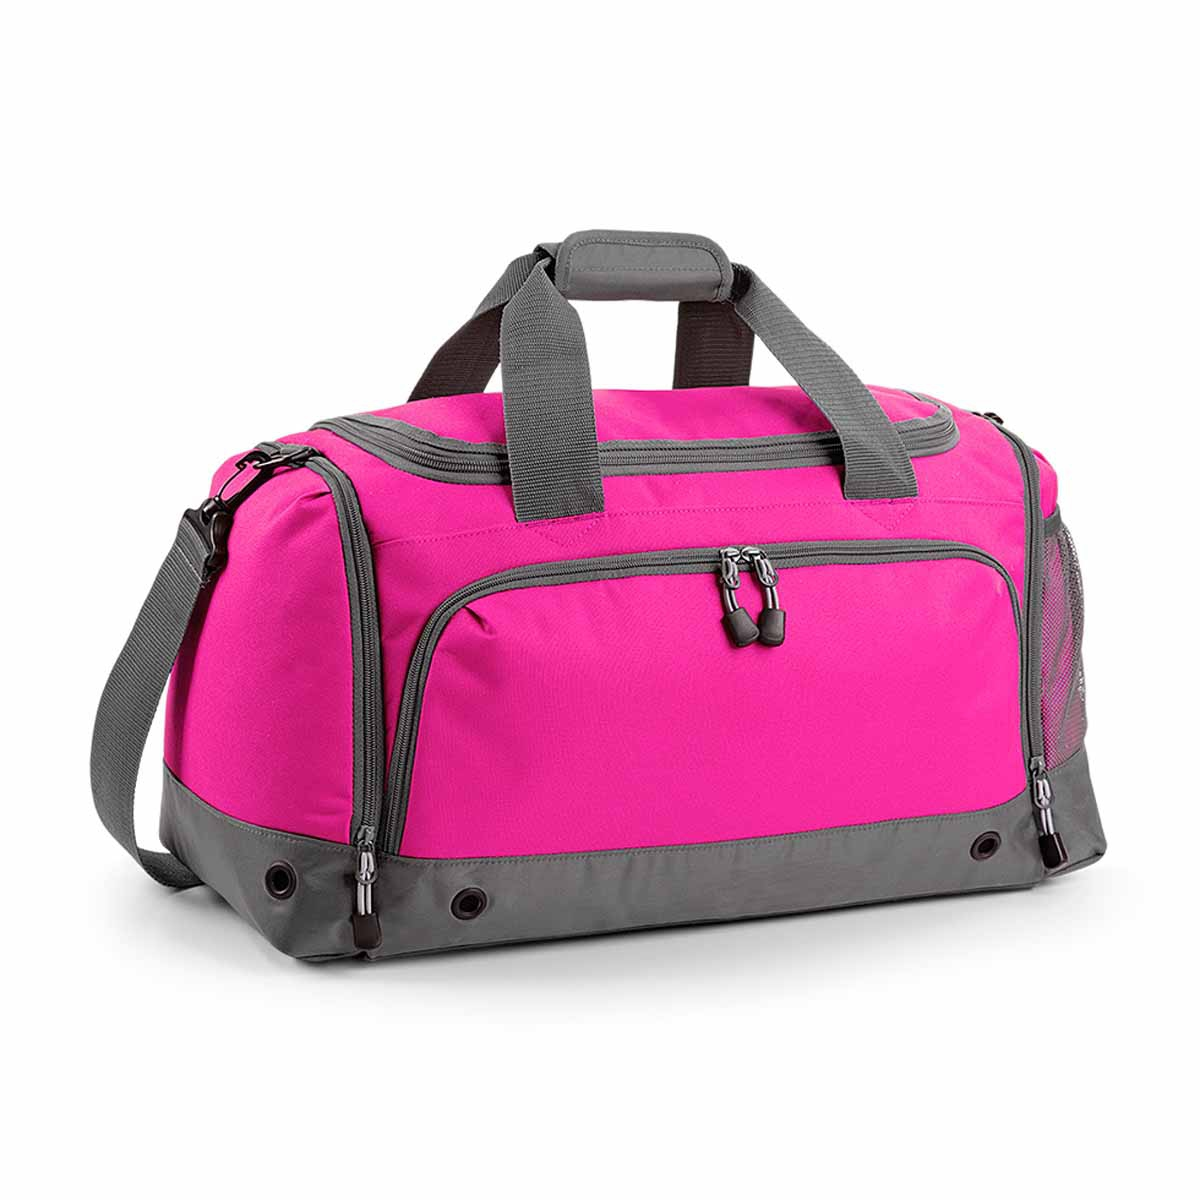 Sac de sport multi-sports - 30 L - BG544 - rose fuschia